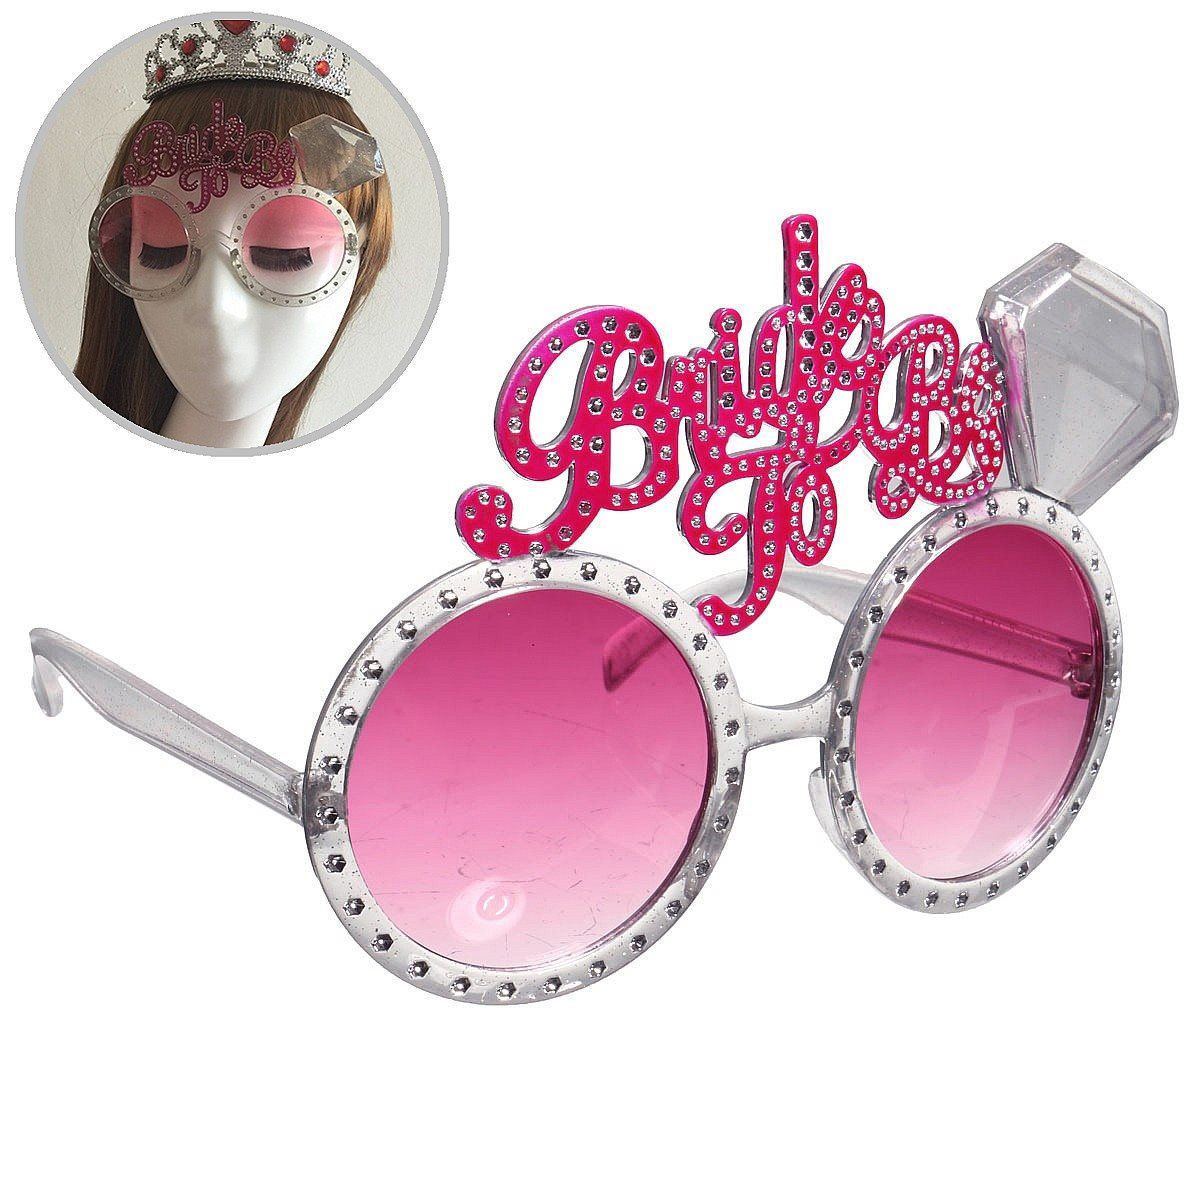 Party Bachelorette Party Bride To Be Party Glasses Costume Accessory Pink Hen Decoration Plastic Glasses Acryl Diamond(China (Mainland))